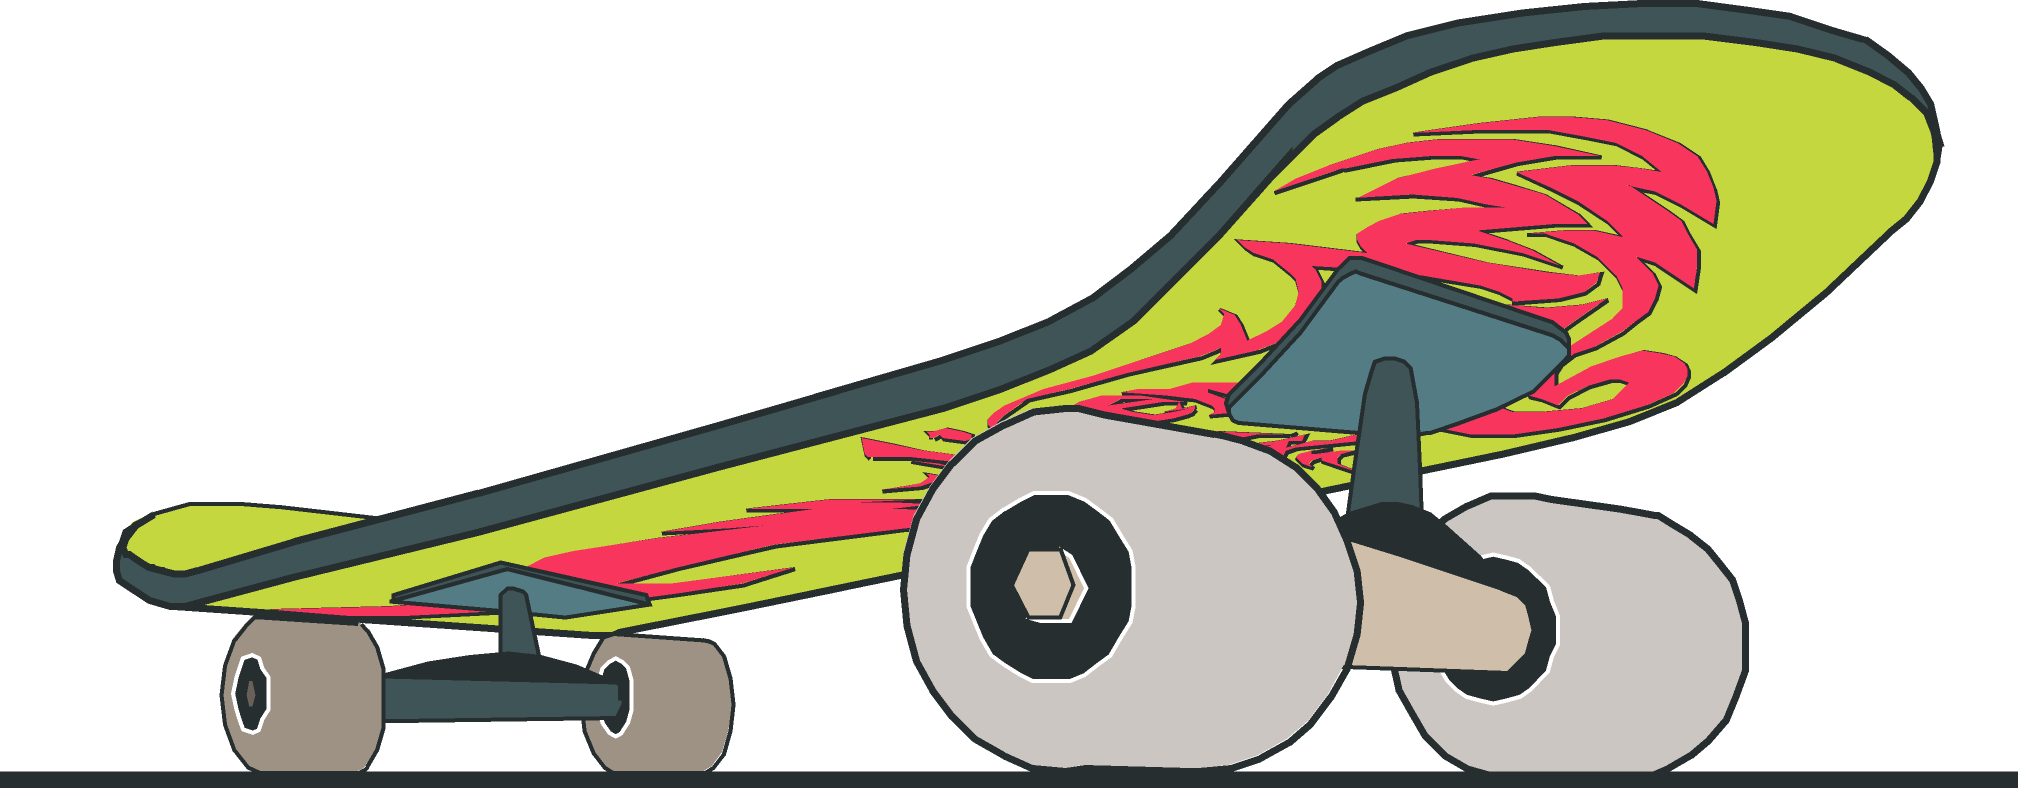 Skateboard clipart #5, Download drawings